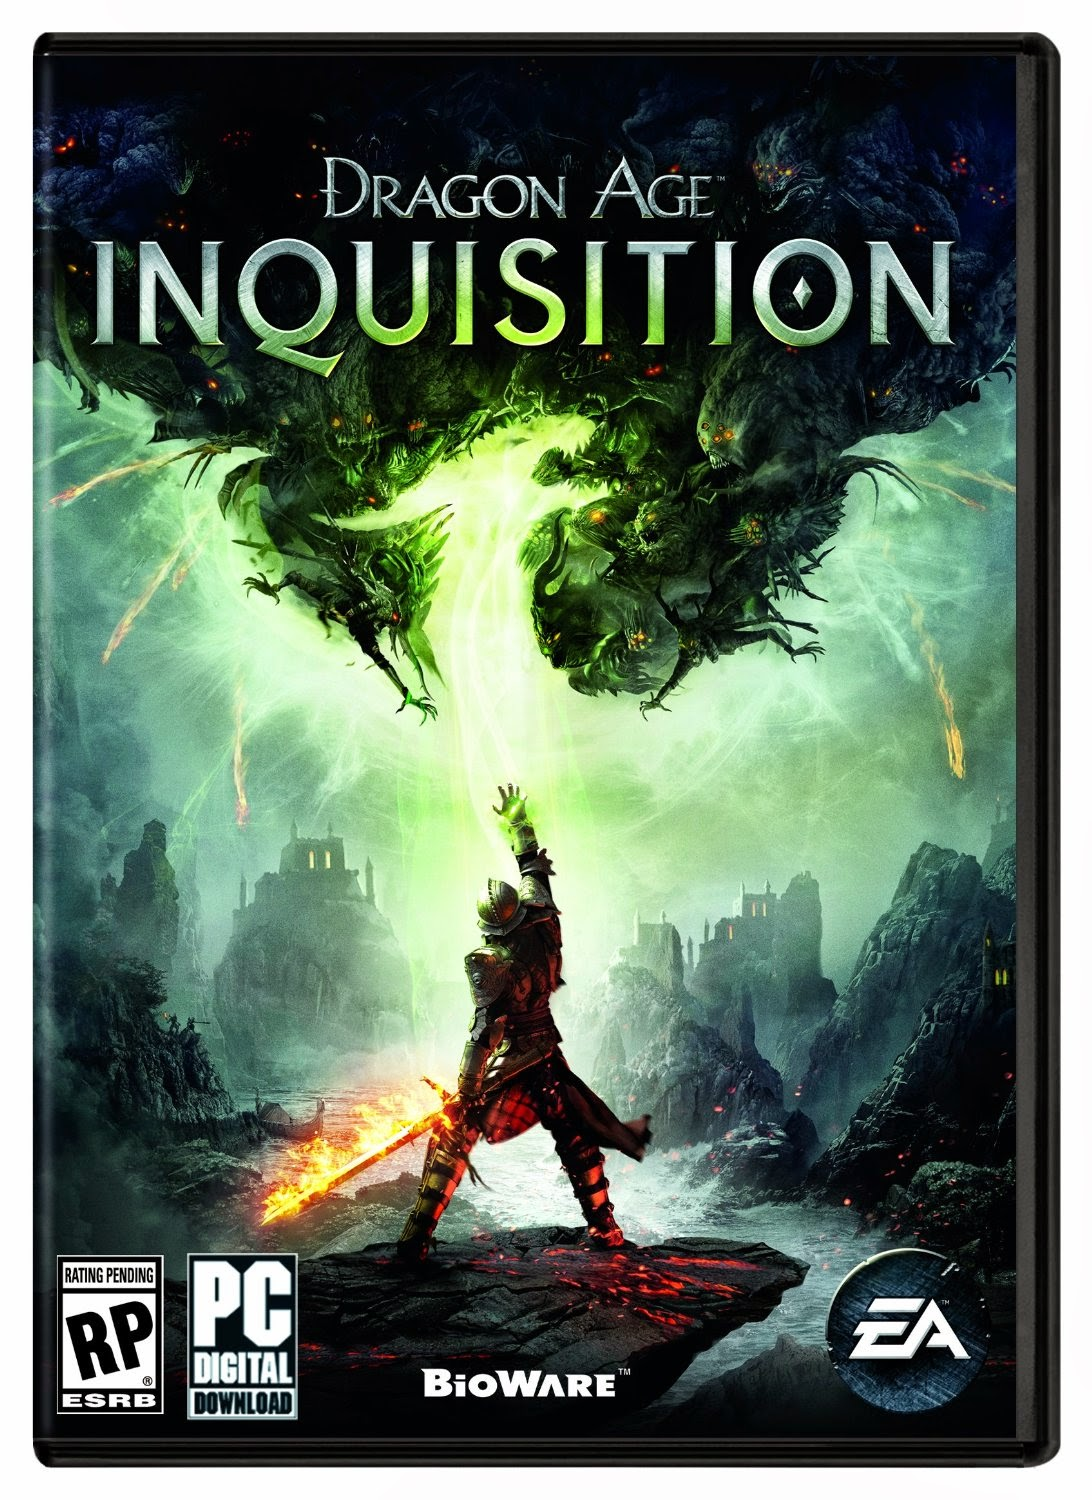 Dragon Age Inquisition Repack Black Box by http://jembersantri.blogspot.com